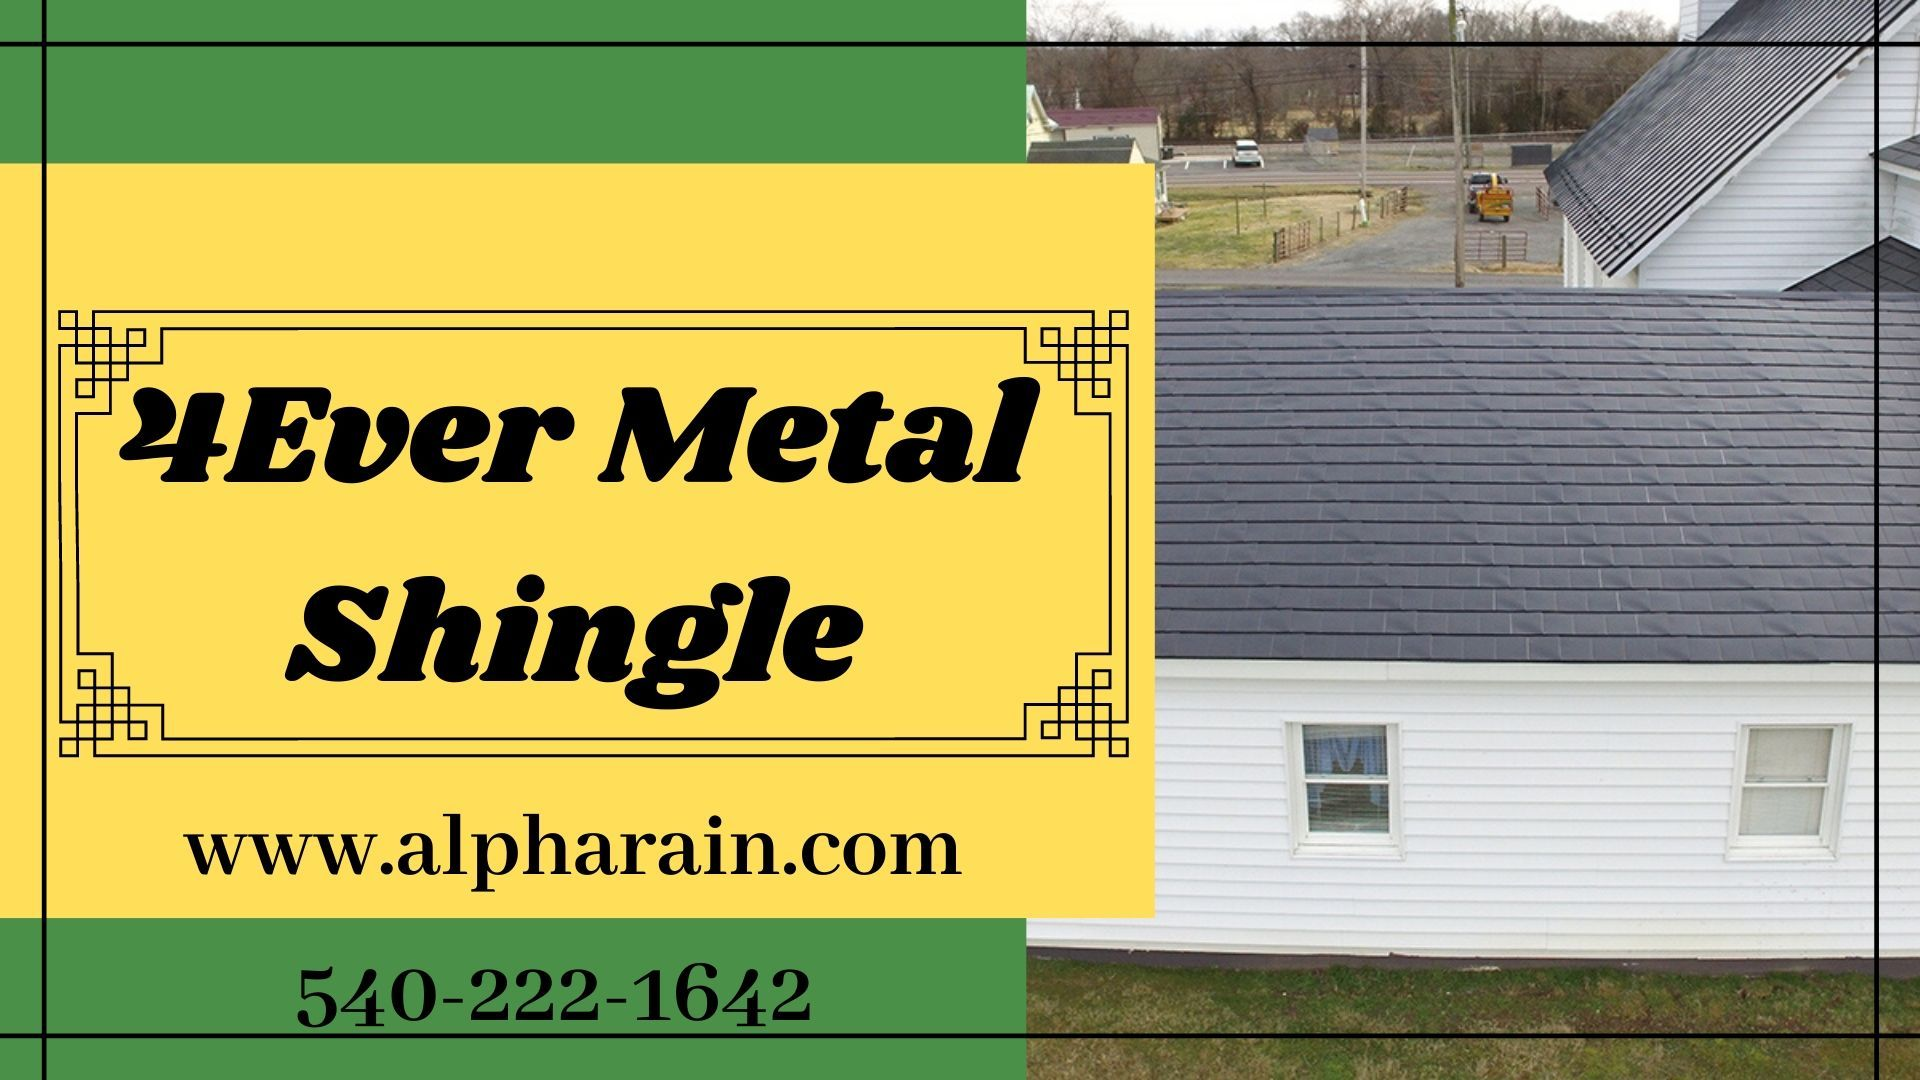 Which Is Better Metal Roof Shingles Or Asphalt Shingles In 2020 Metal Shingles Metal Shingle Roof Shingling